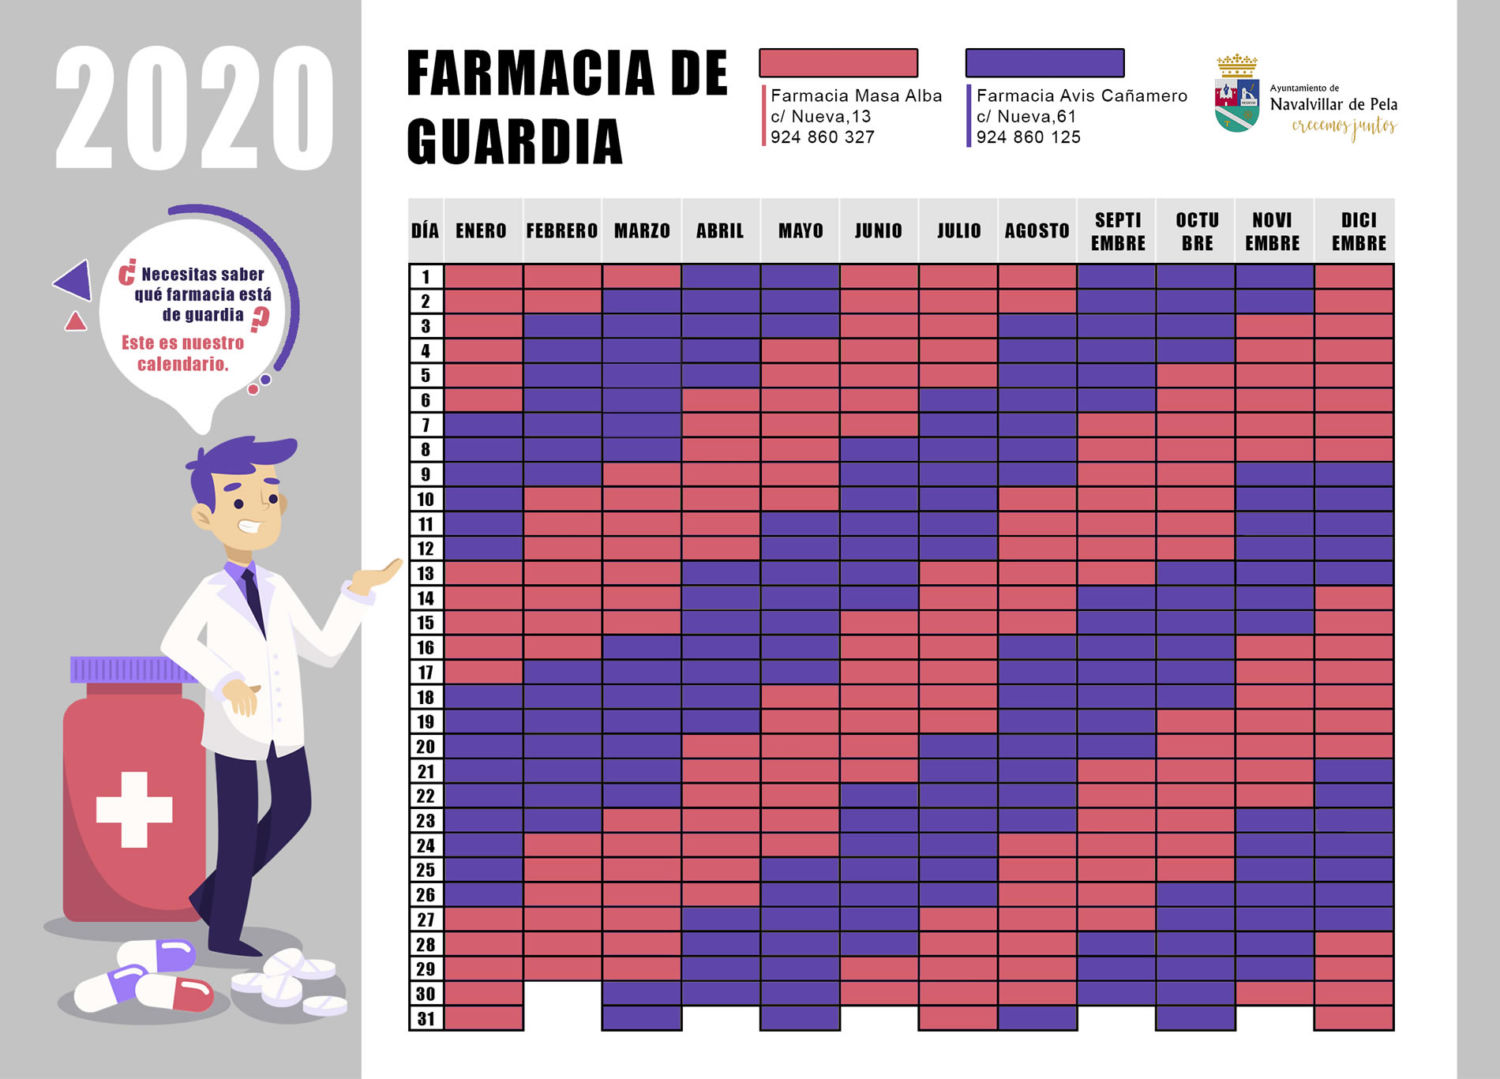 CALENDARIO FARMACIAS DE GUARDIA 2020